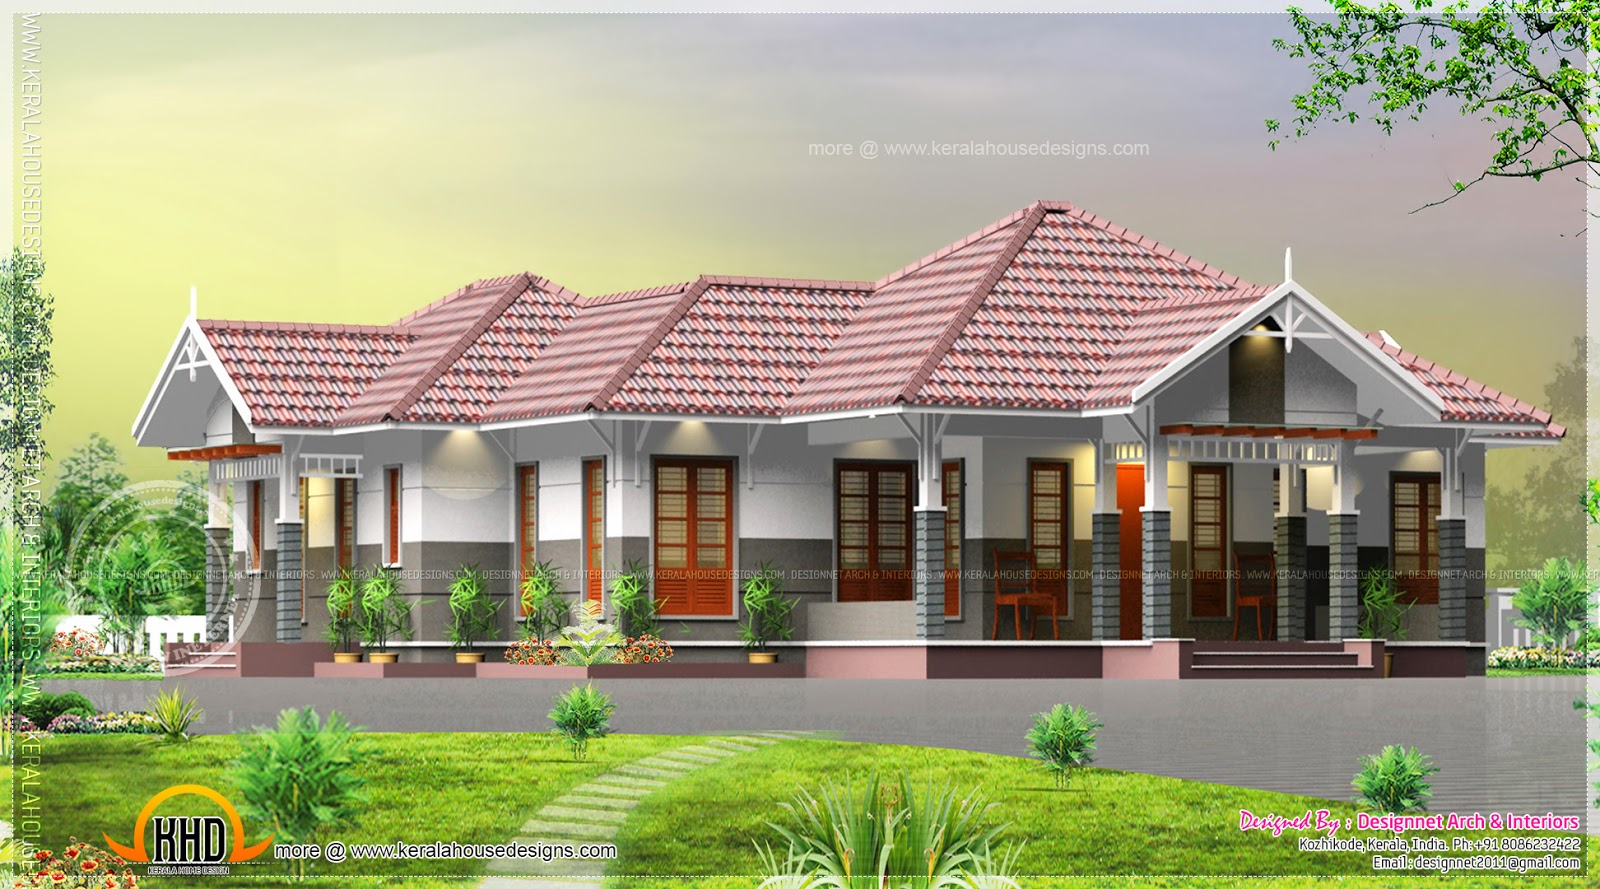 Single floor courtyard 4 bedroom house kerala home for Single floor 4 bedroom house plans kerala